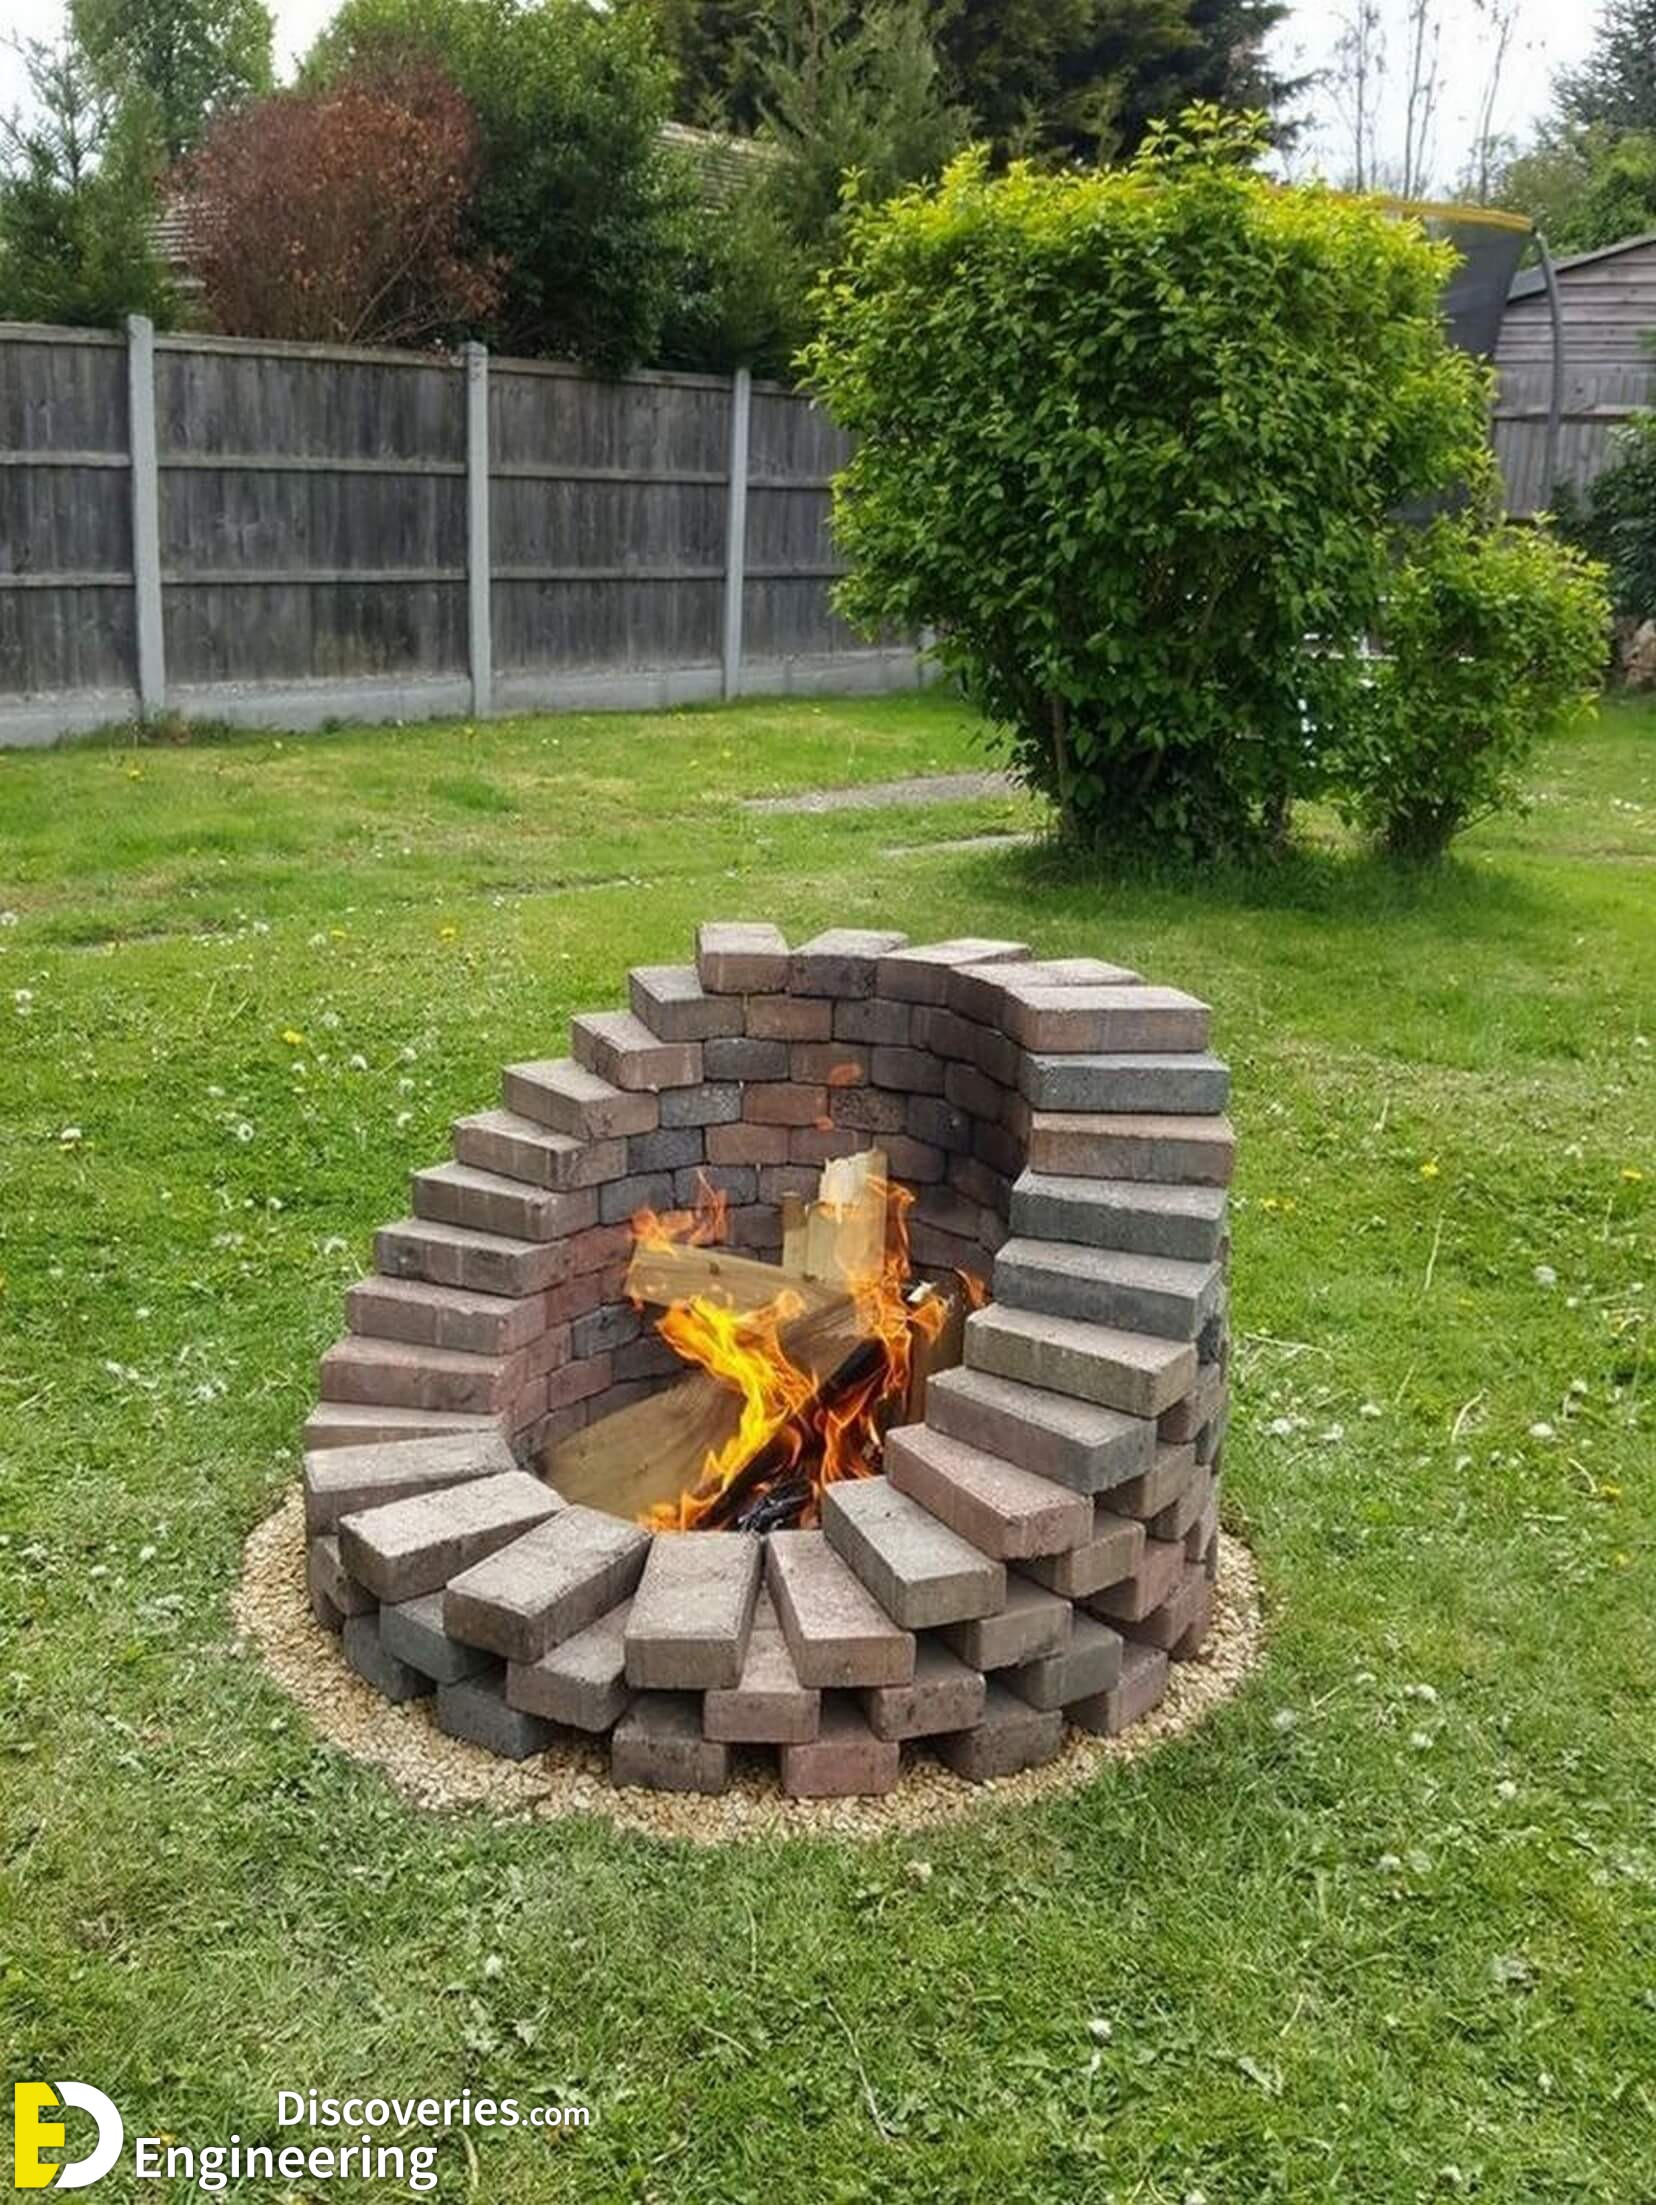 40 Amazing Backyard Fire Pit Ideas Engineering Discoveries